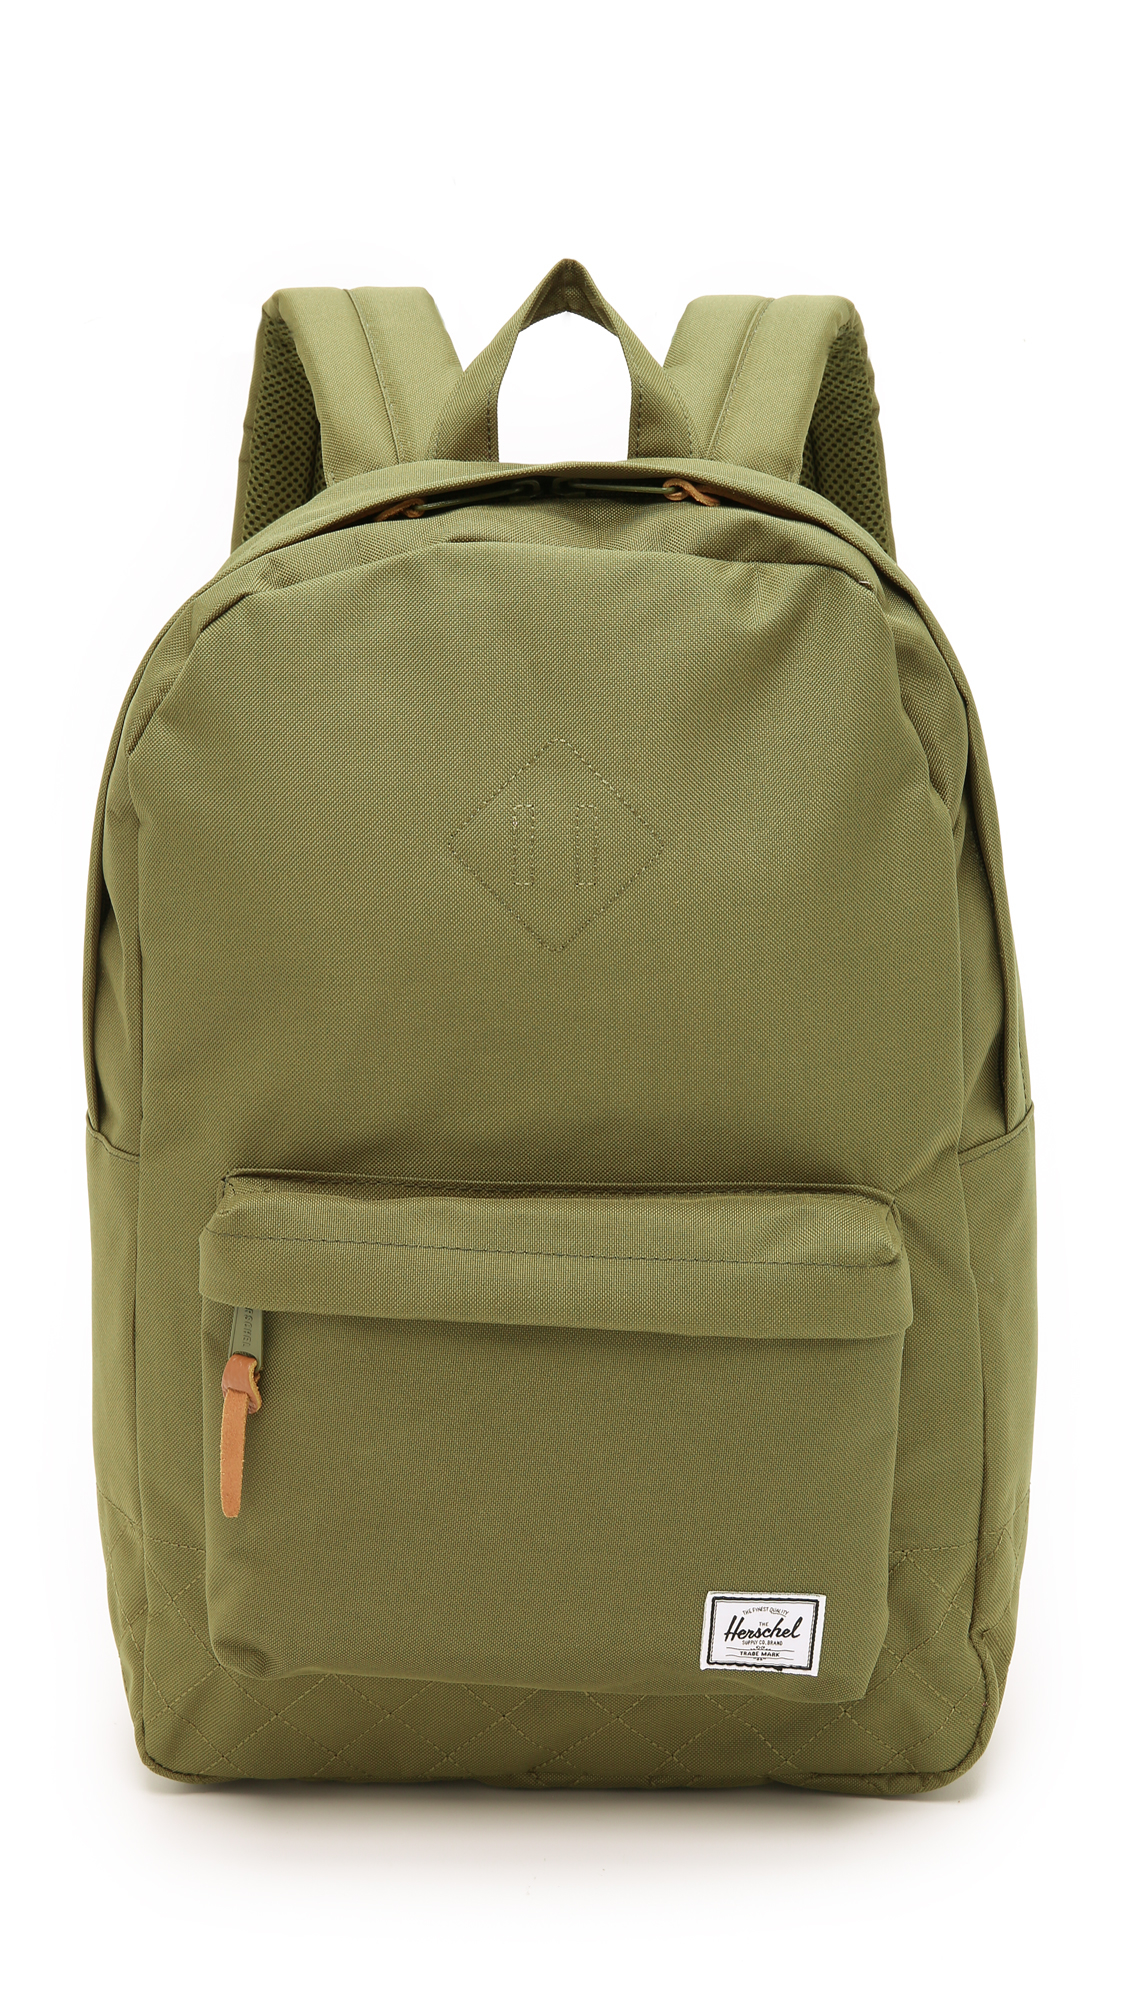 310df3c74ea1 Lyst - Herschel Supply Co. Heritage Quilted Backpack in Green for Men